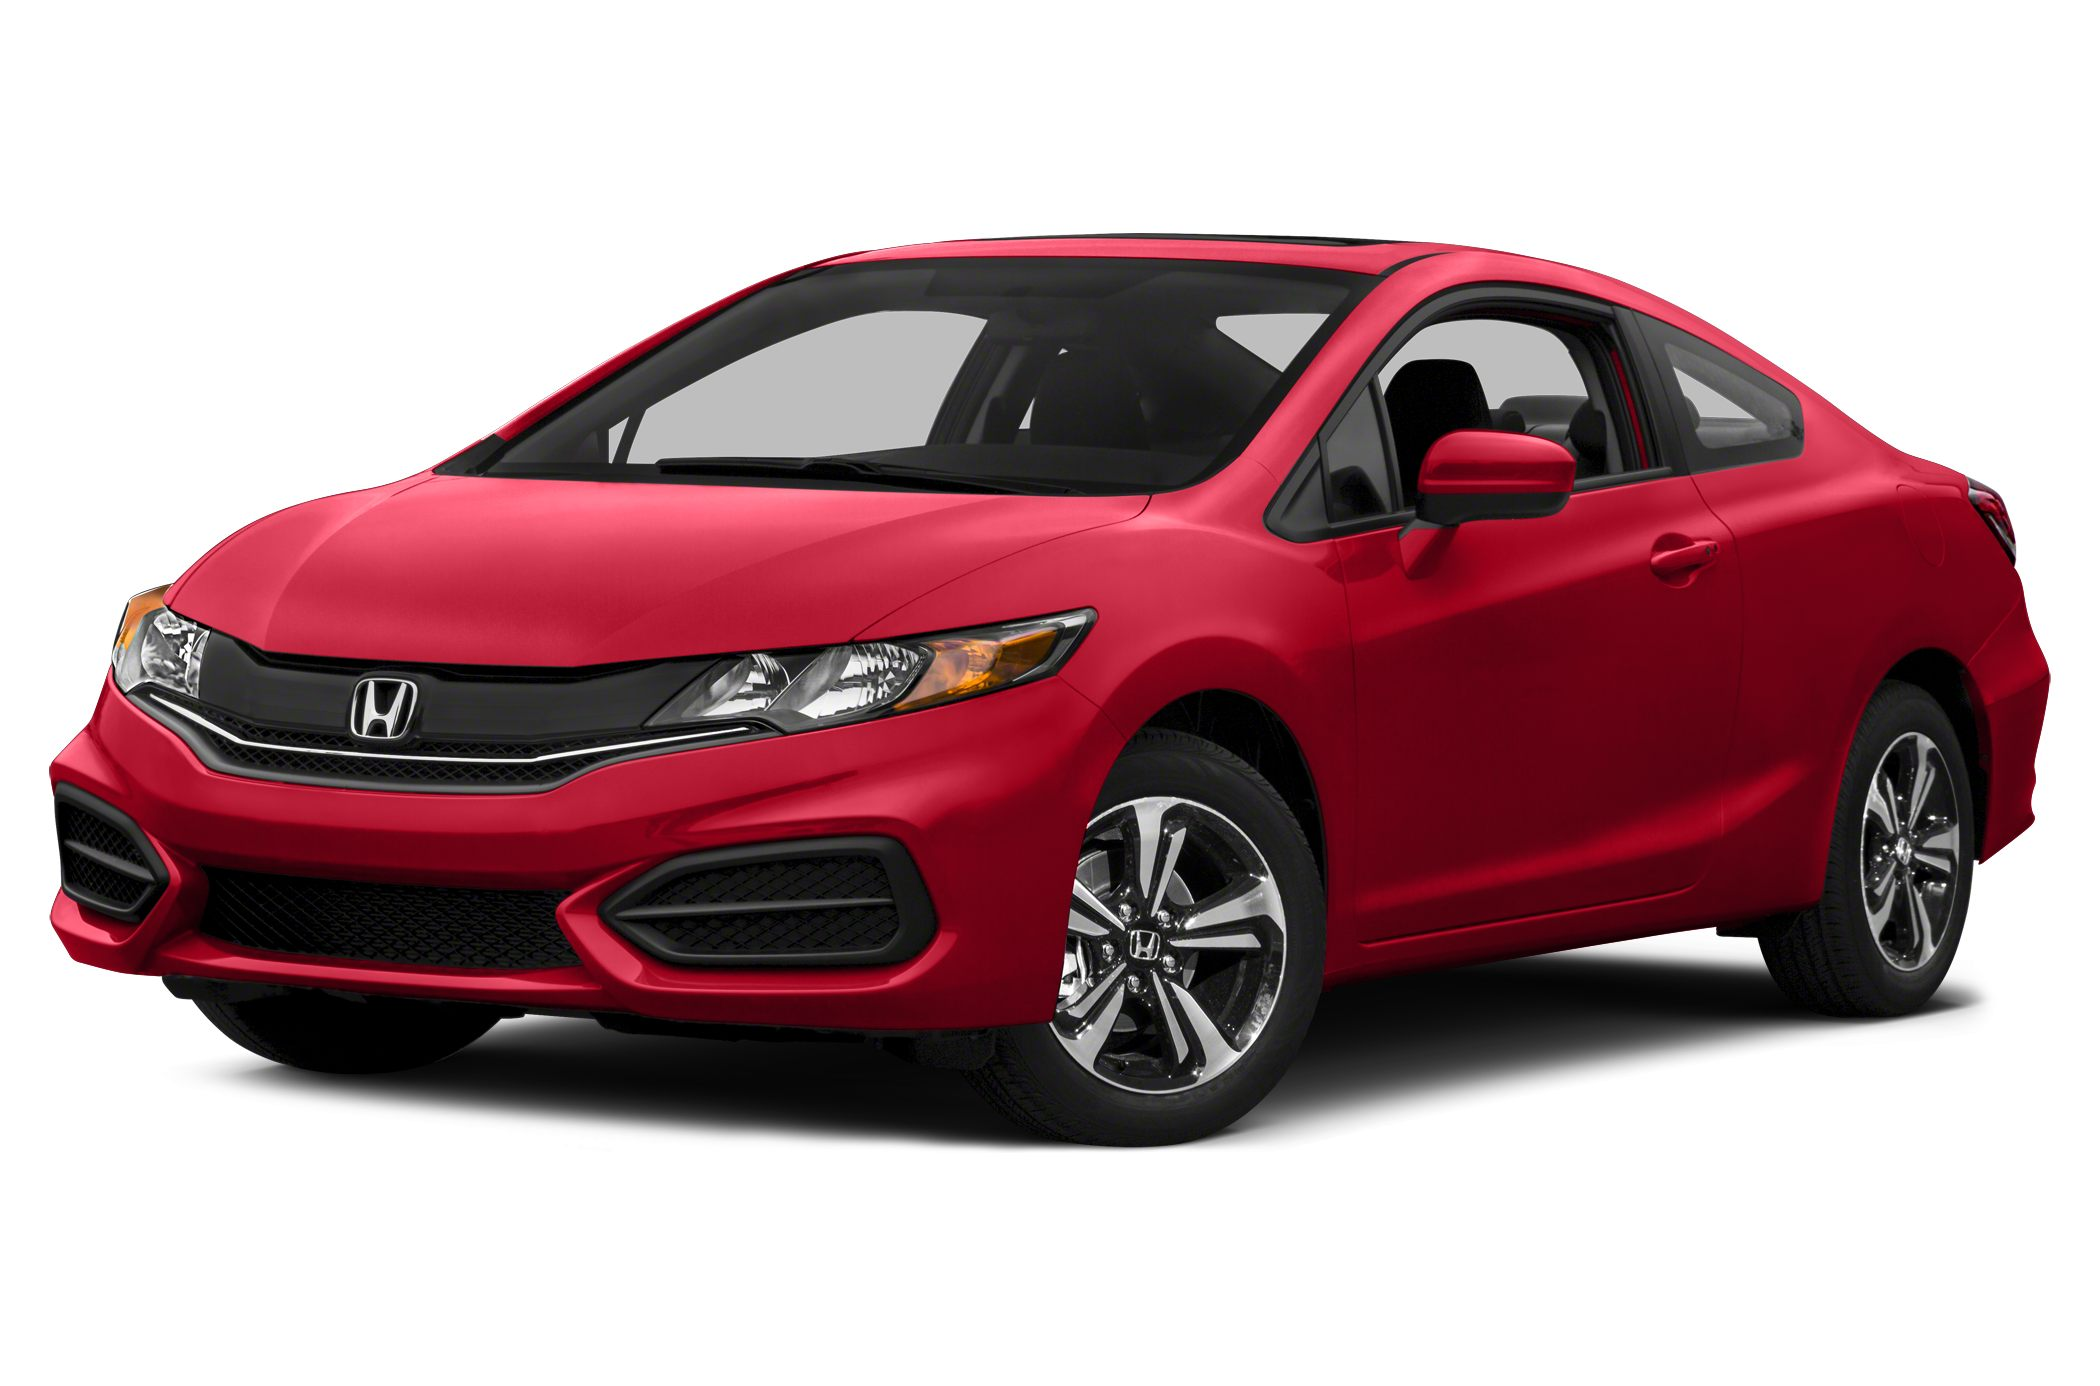 2015 Honda Civic EX Coupe for sale in Milpitas for $22,010 with 6 miles